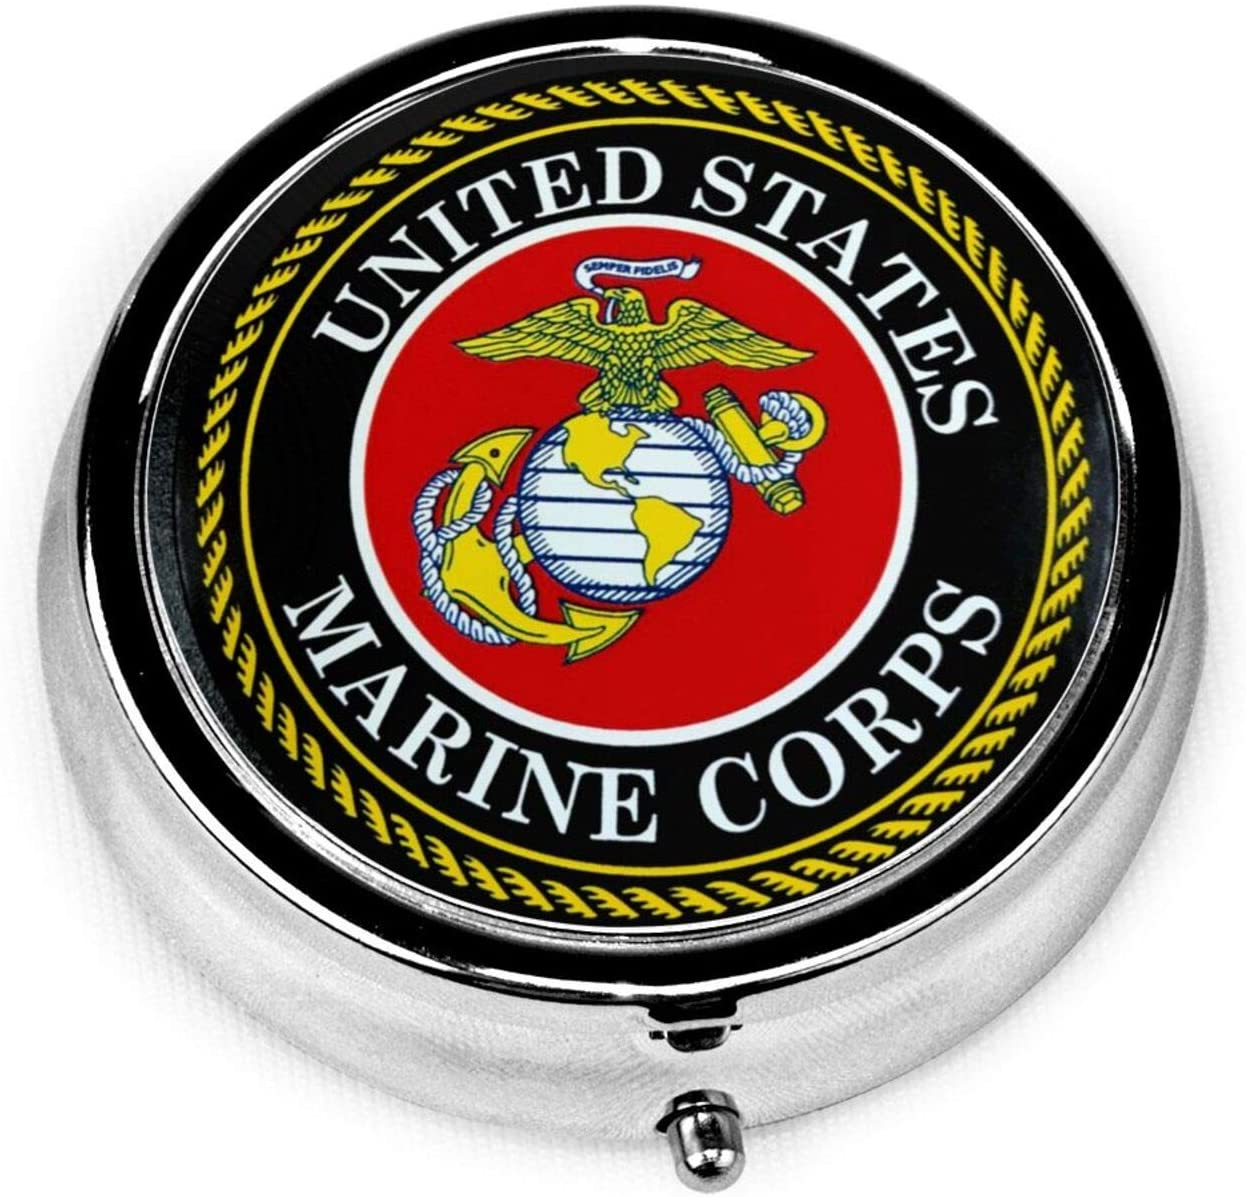 U.S. Marine Corps Round Pill Box Compact 3 Compartment Medicine Case for Pocket, Purse, Daily Needs and Travelling Unique Gift